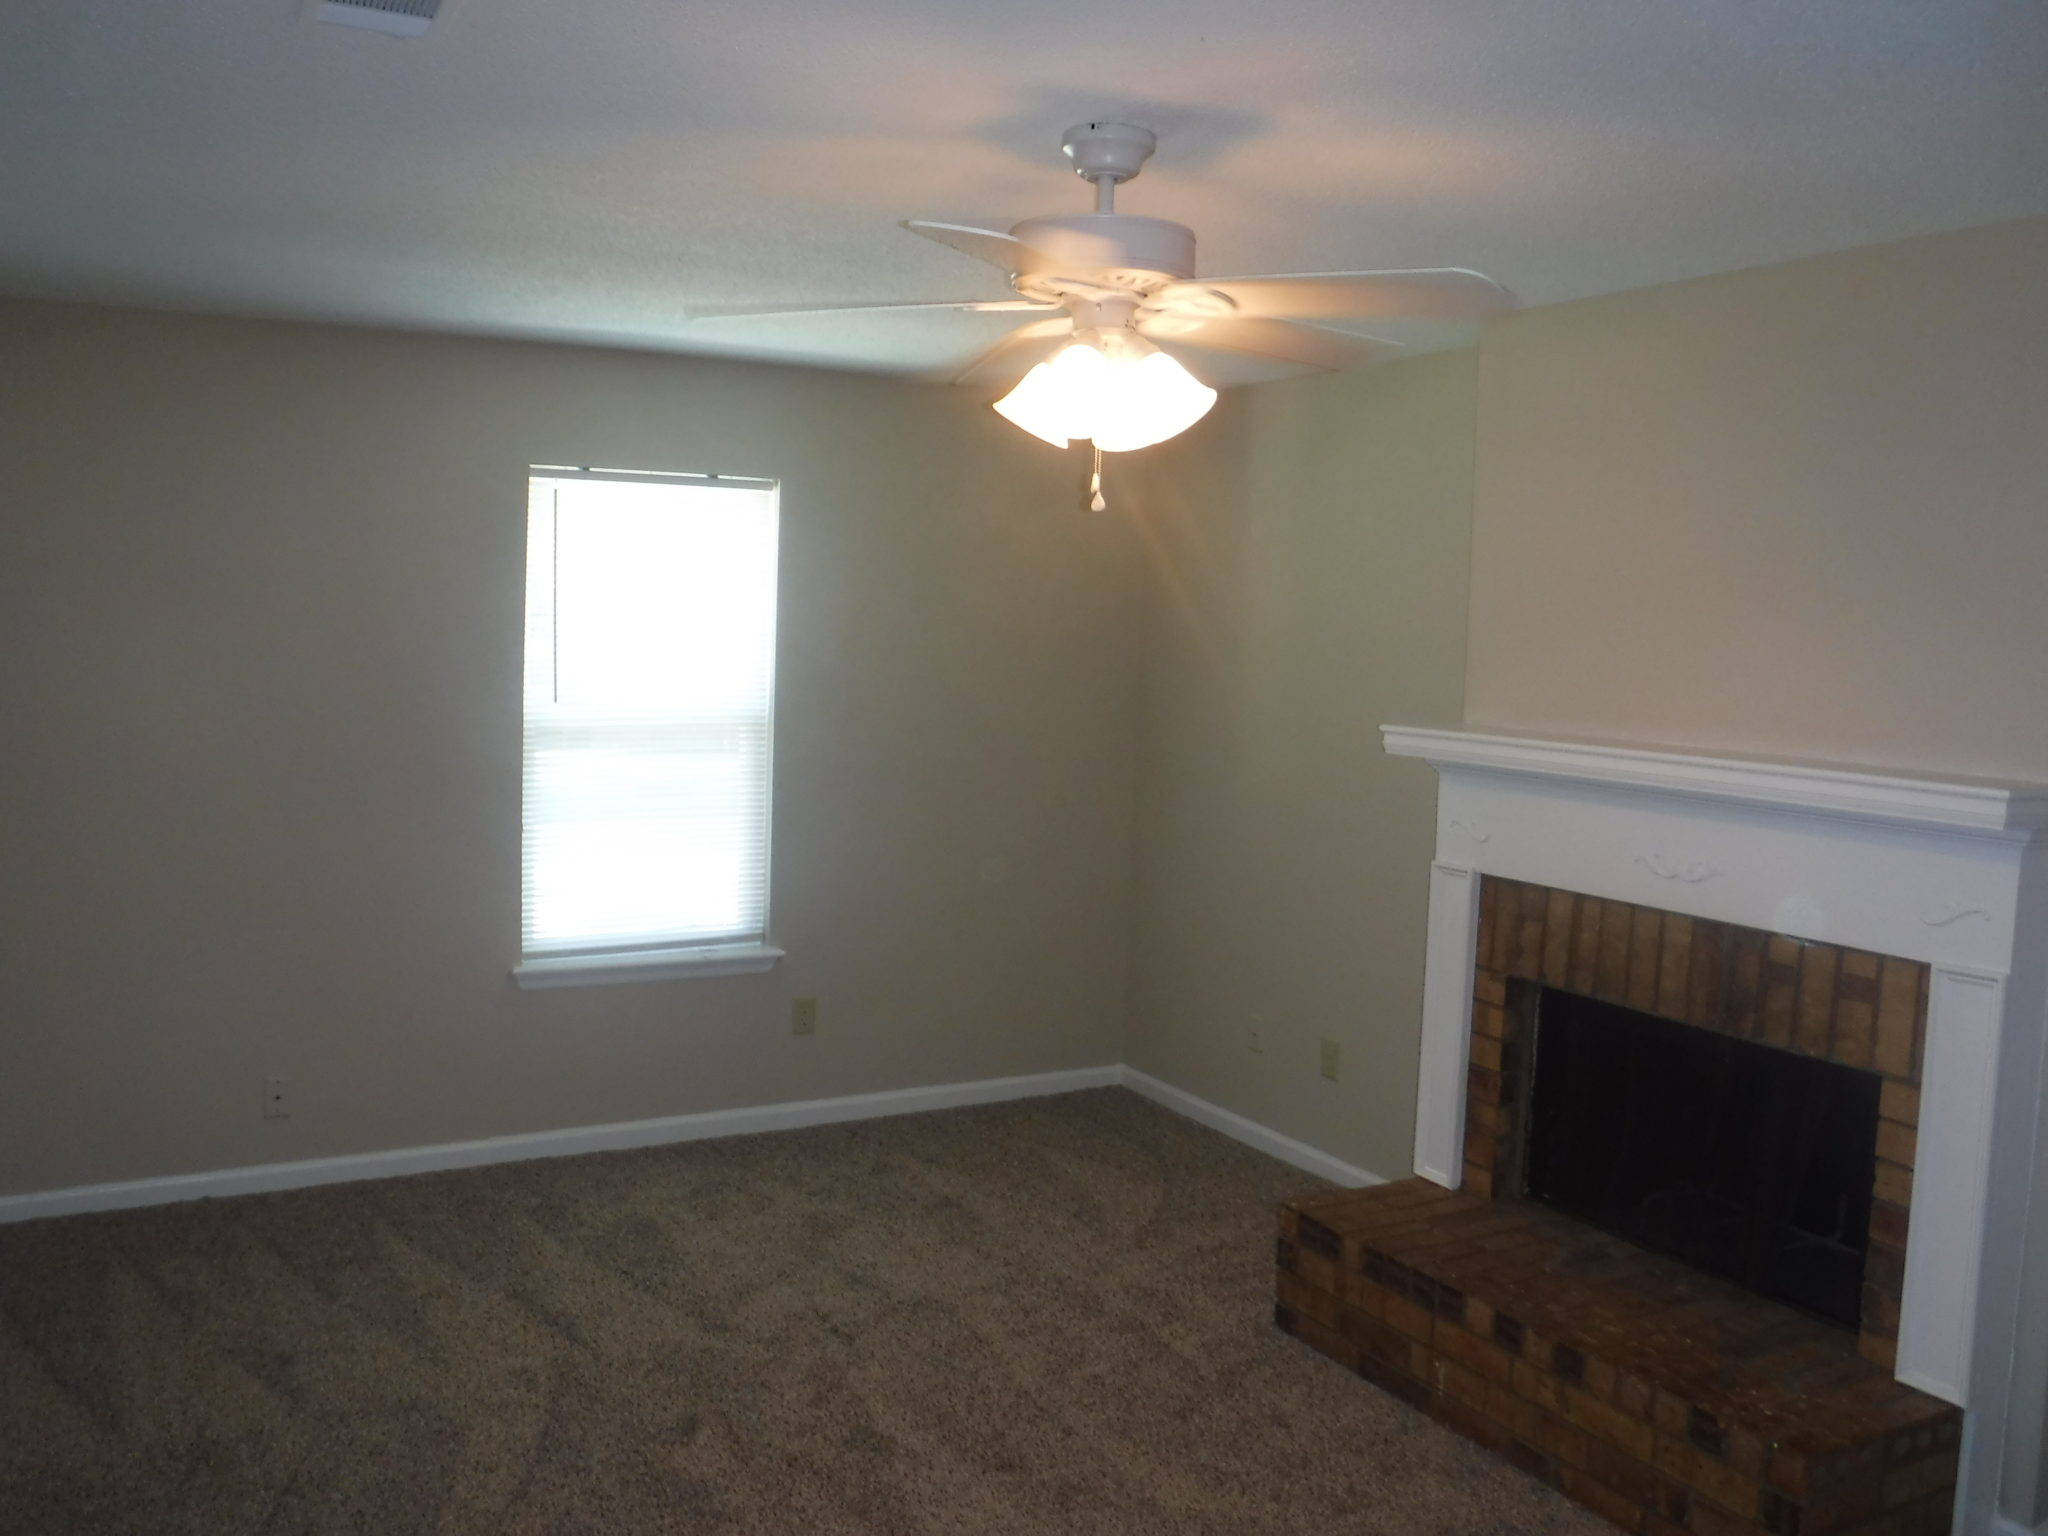 12 X 18 Separate Family Room With New Ceiling Fan And